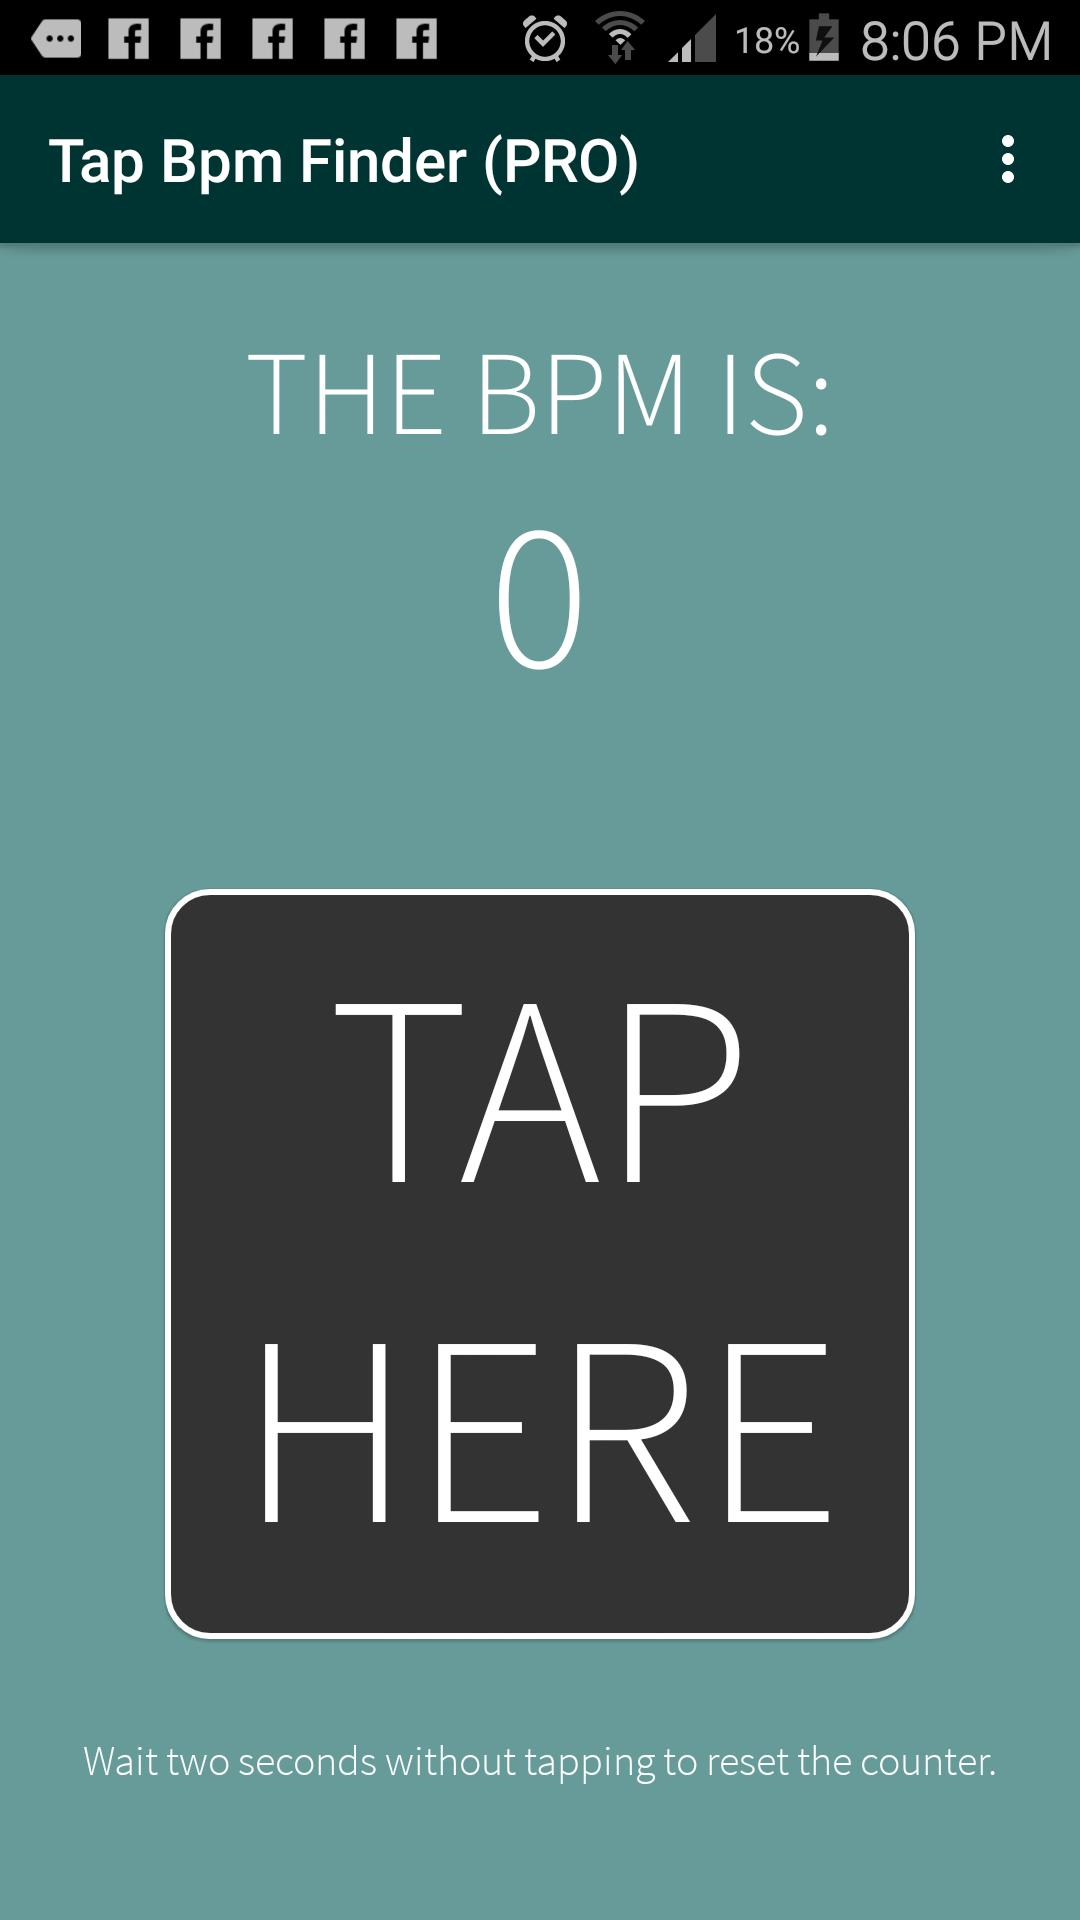 Tap Bpm Finder for Android - APK Download